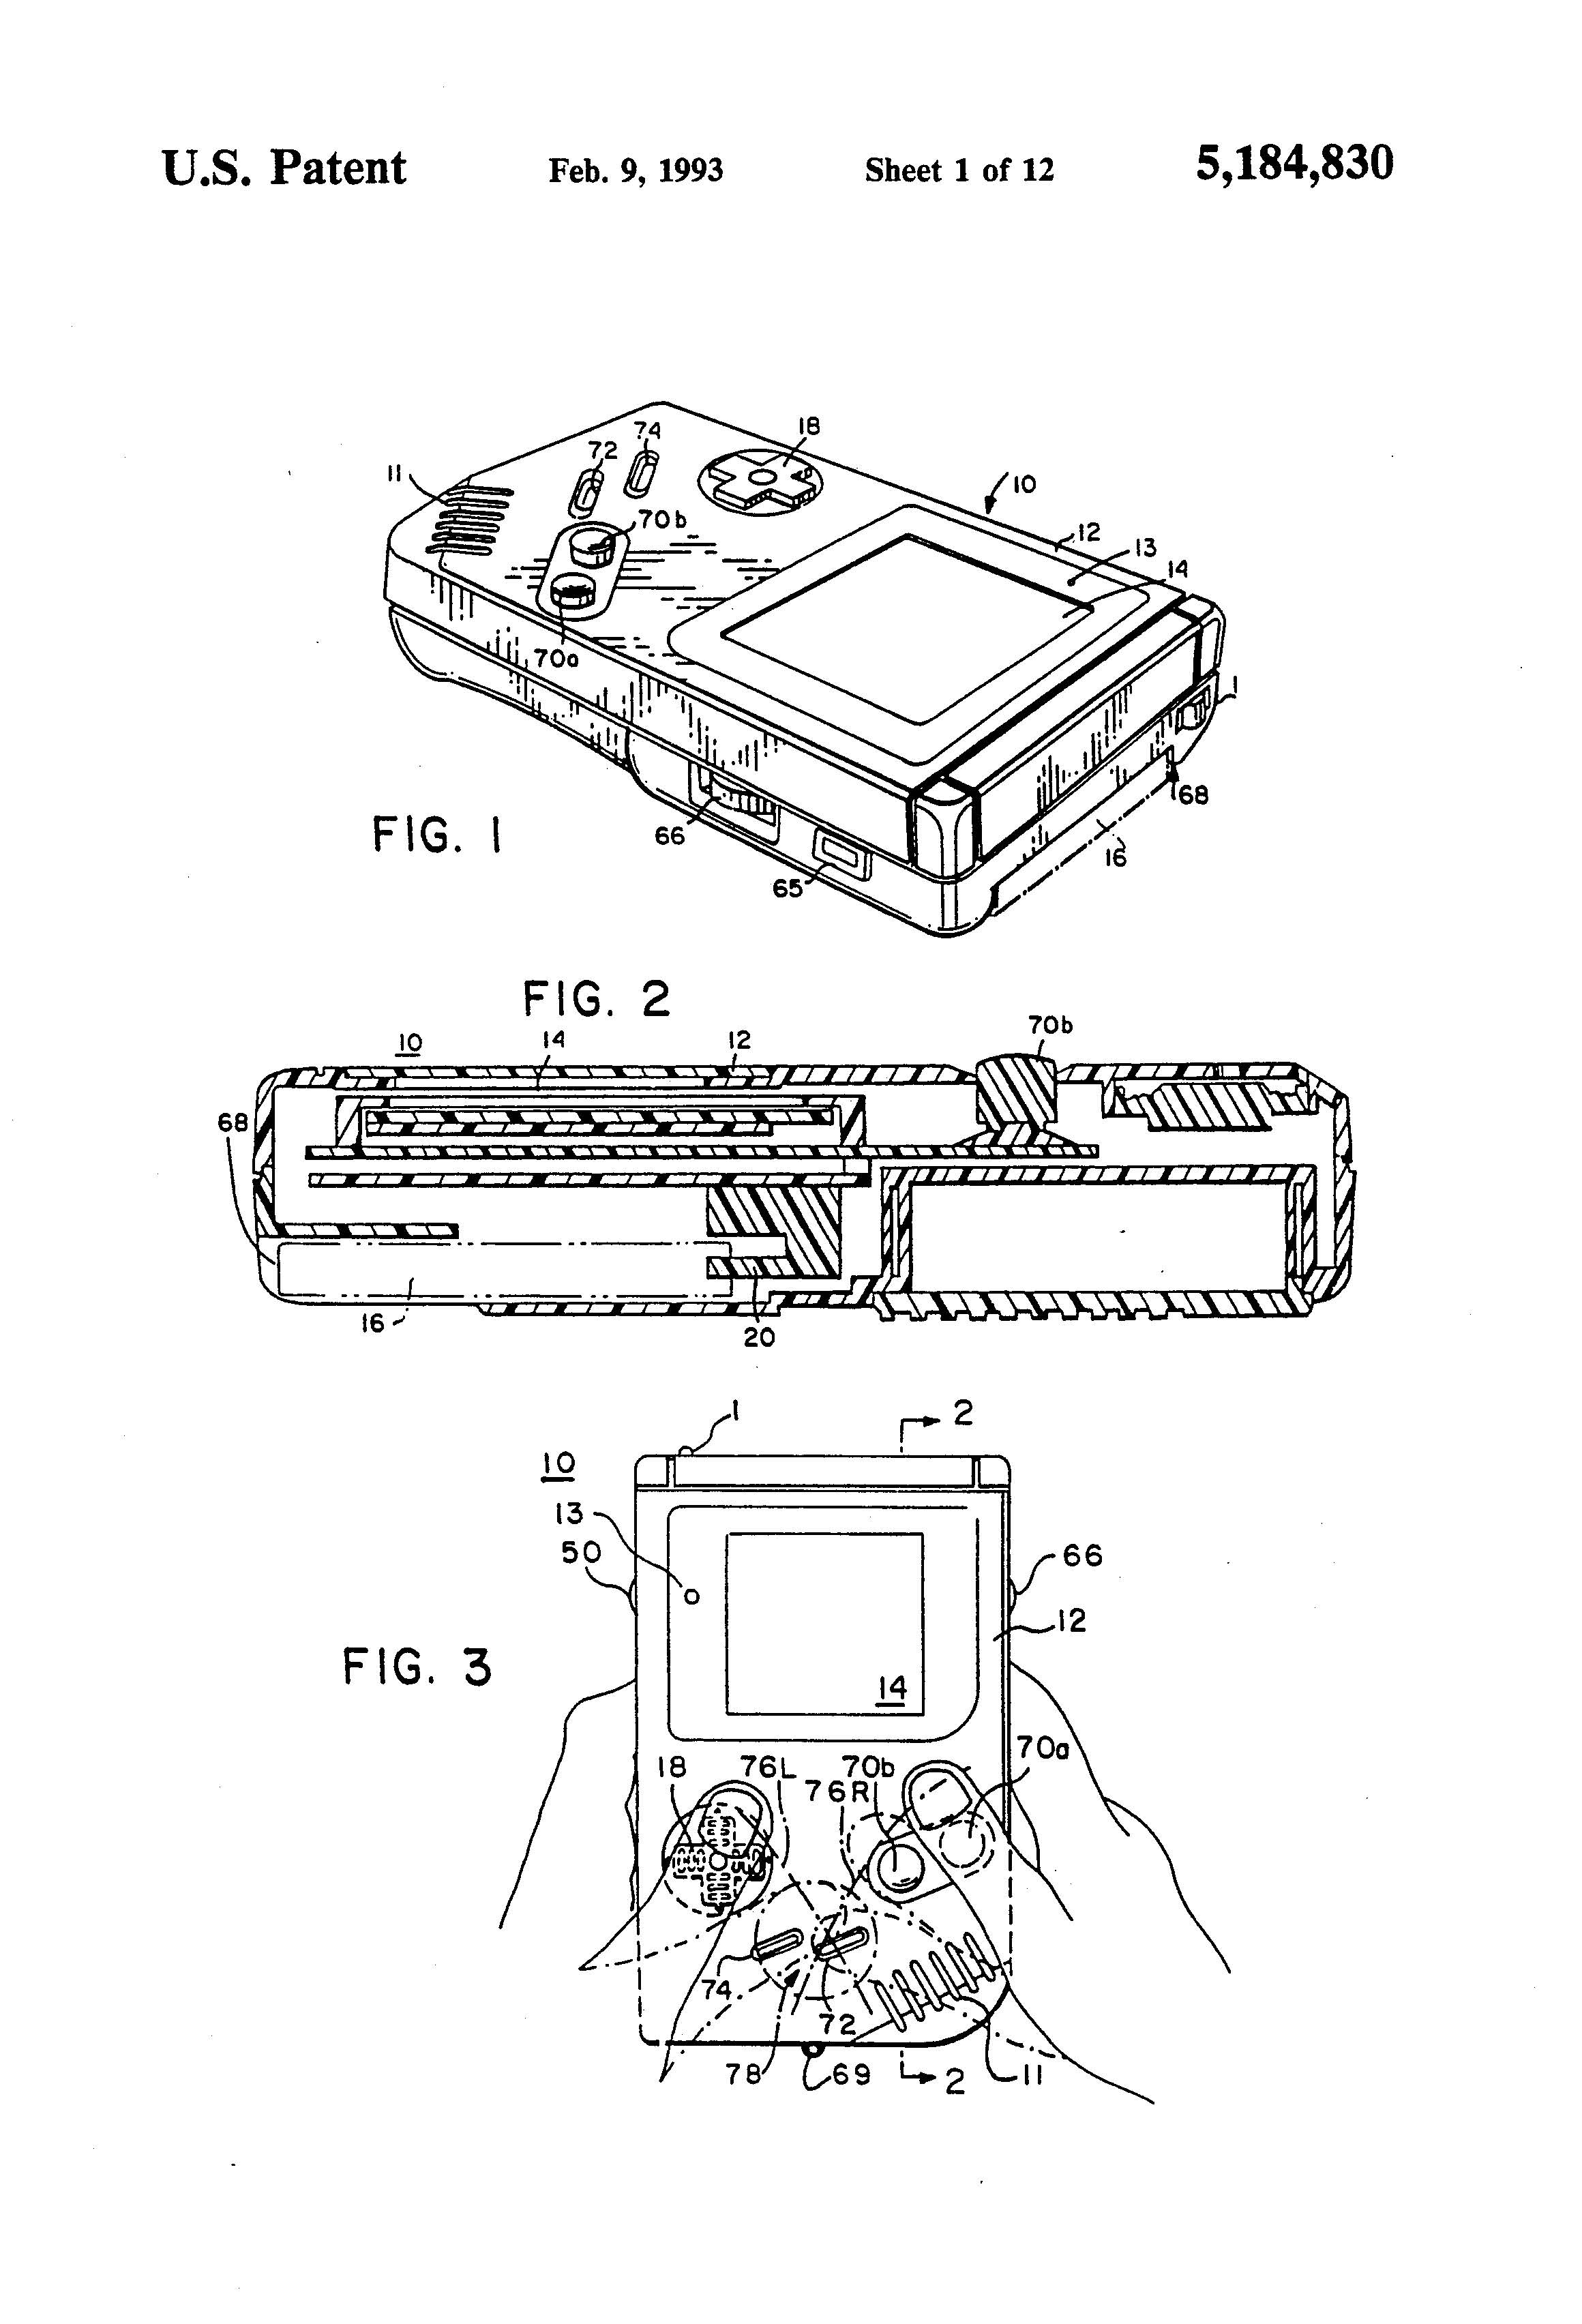 Patent of the Week: Compact Hand-Held Video Game System